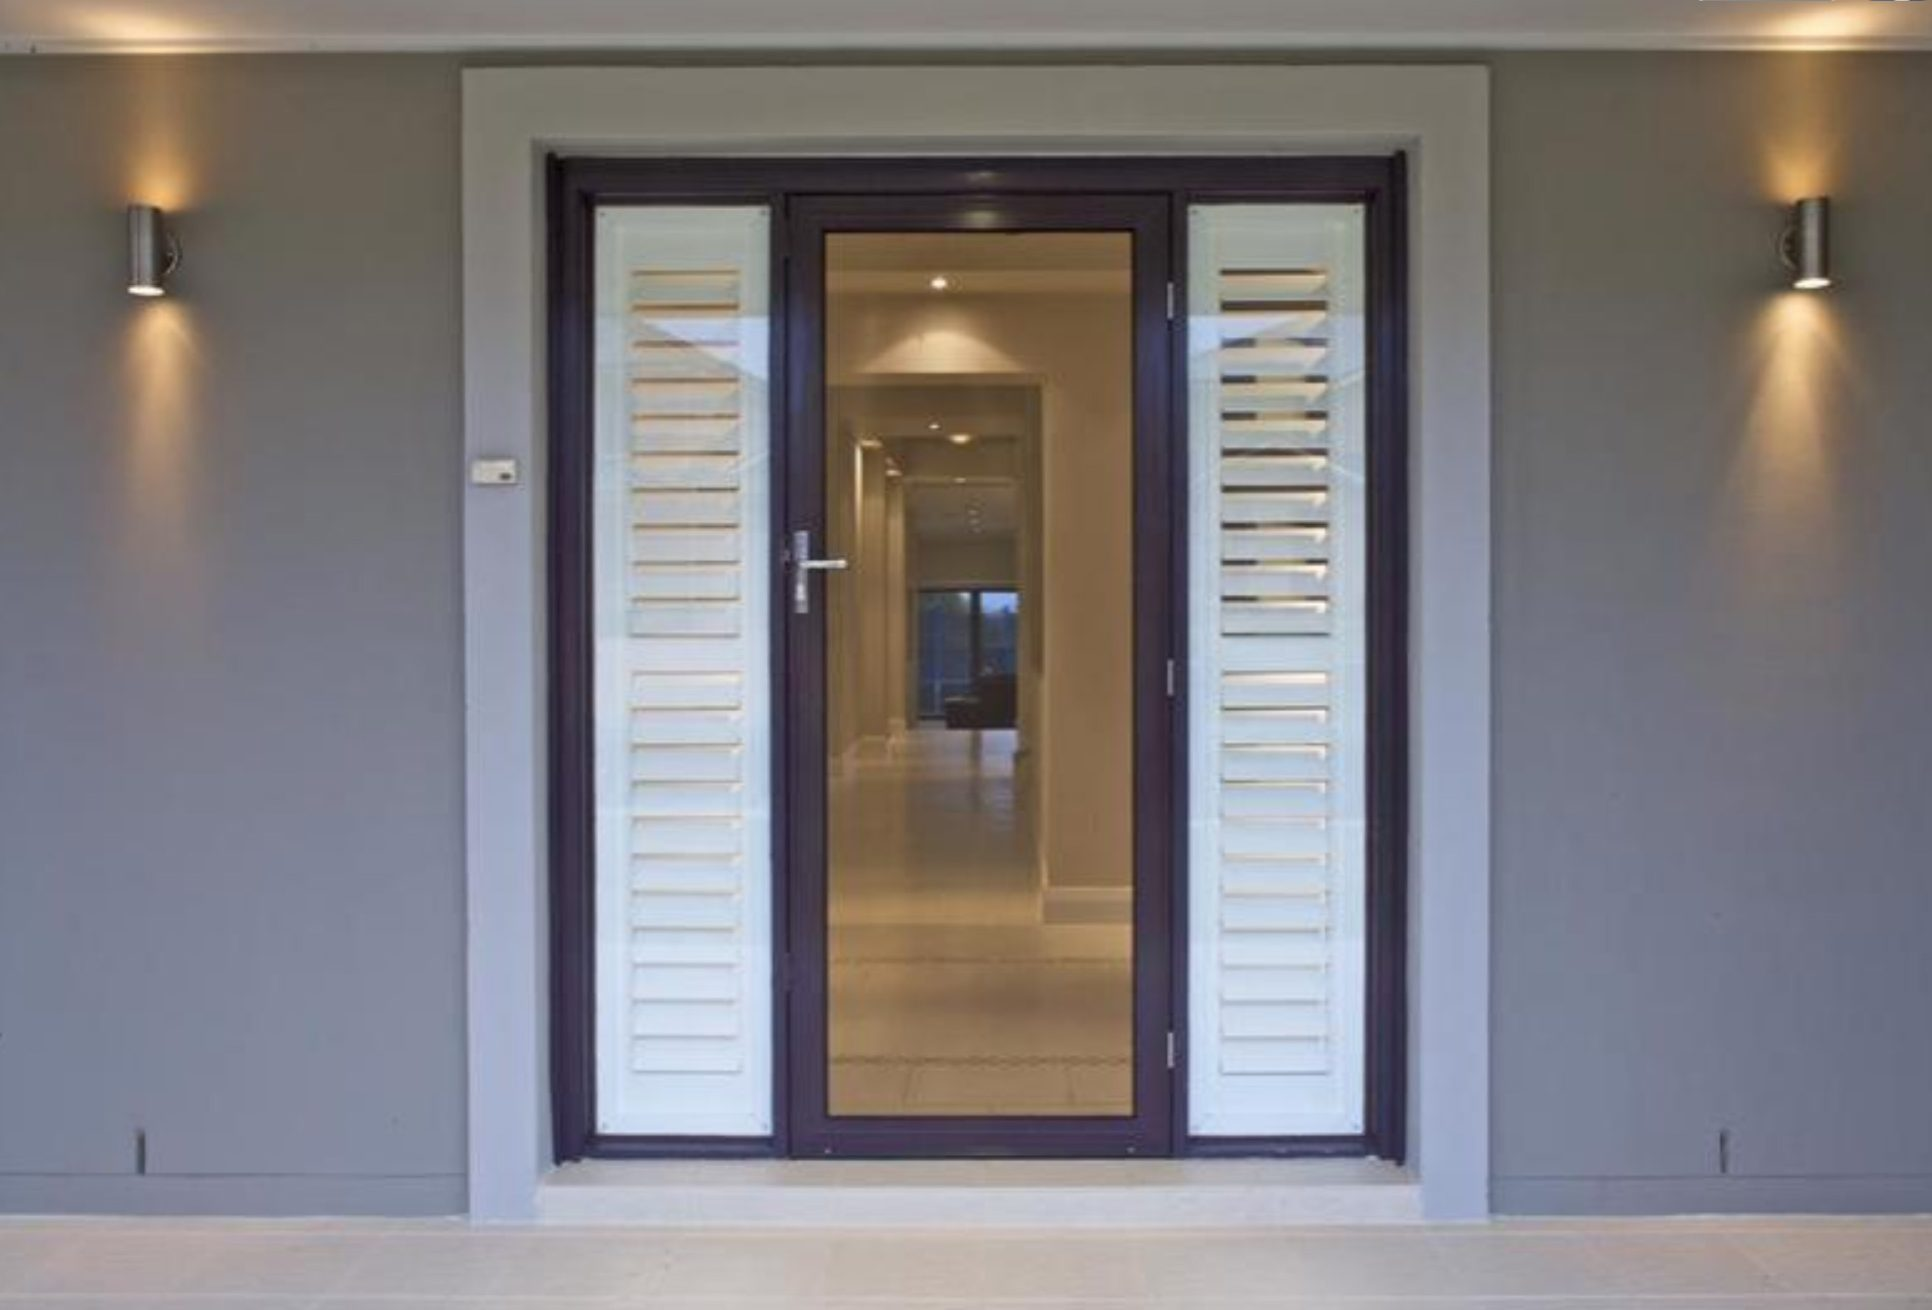 Invisi-Gard Security Doors & Screens